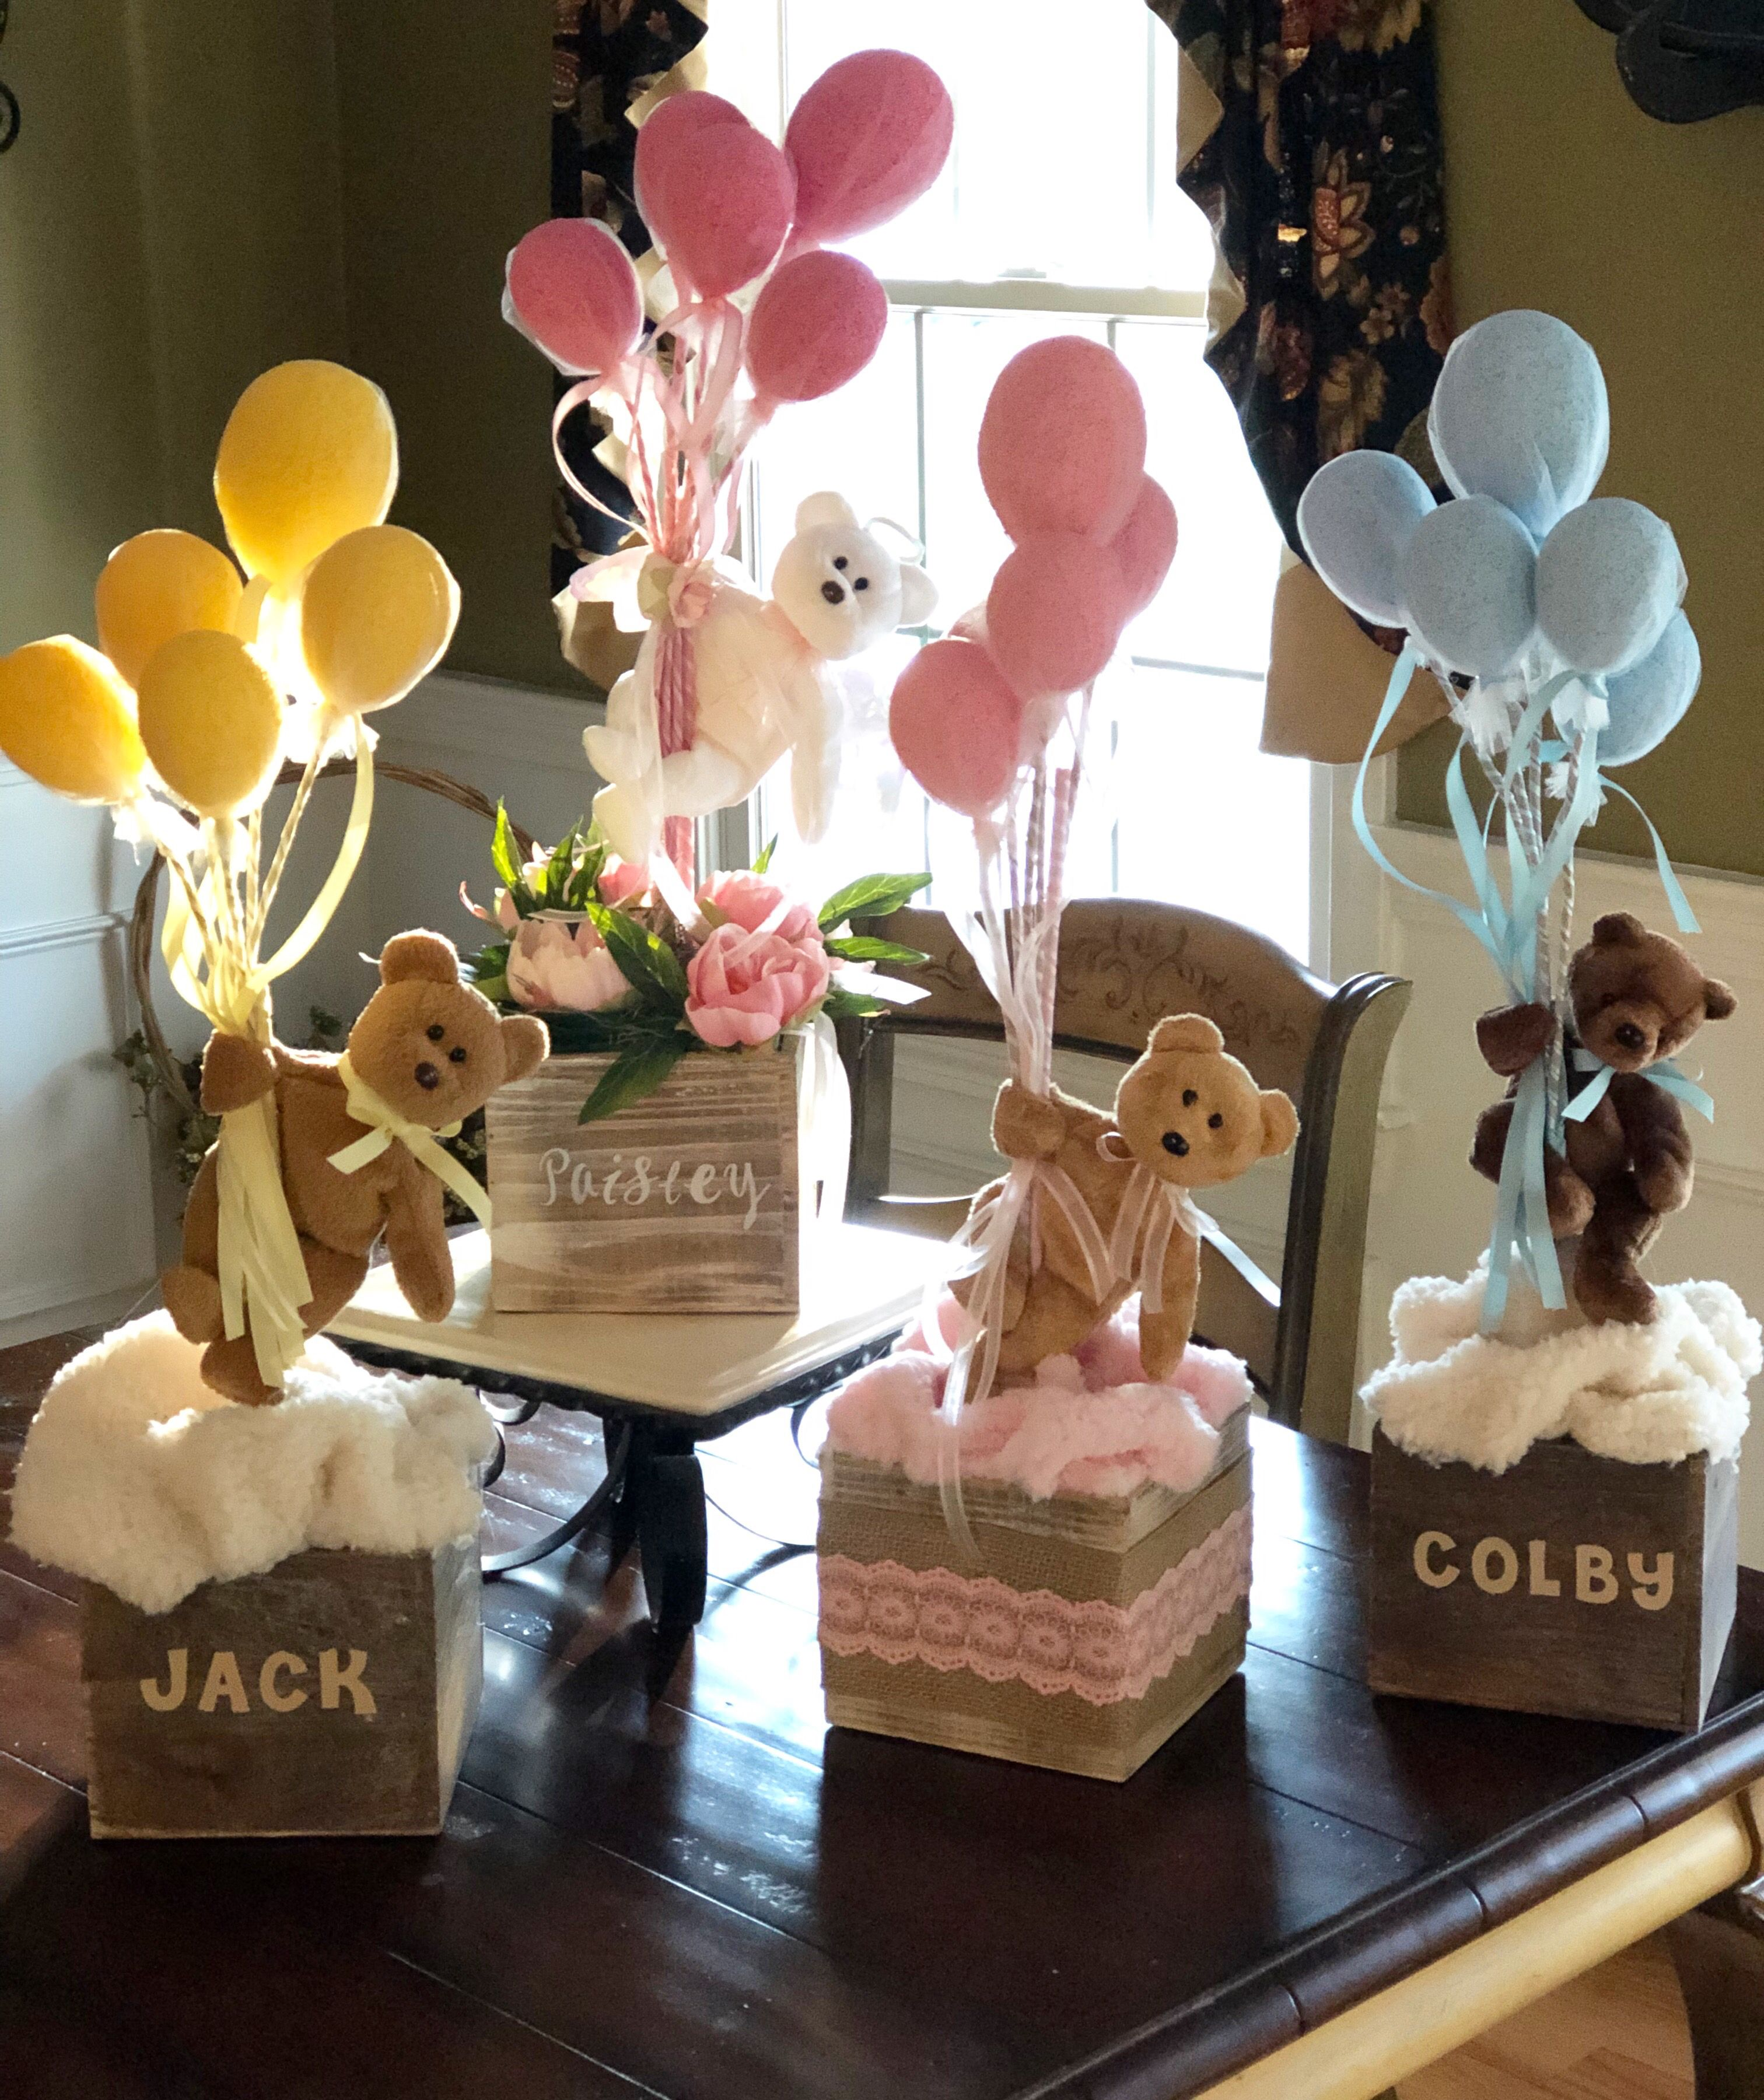 Balloon Arrangements Teddy Bears And Balloons Personalized Gifts